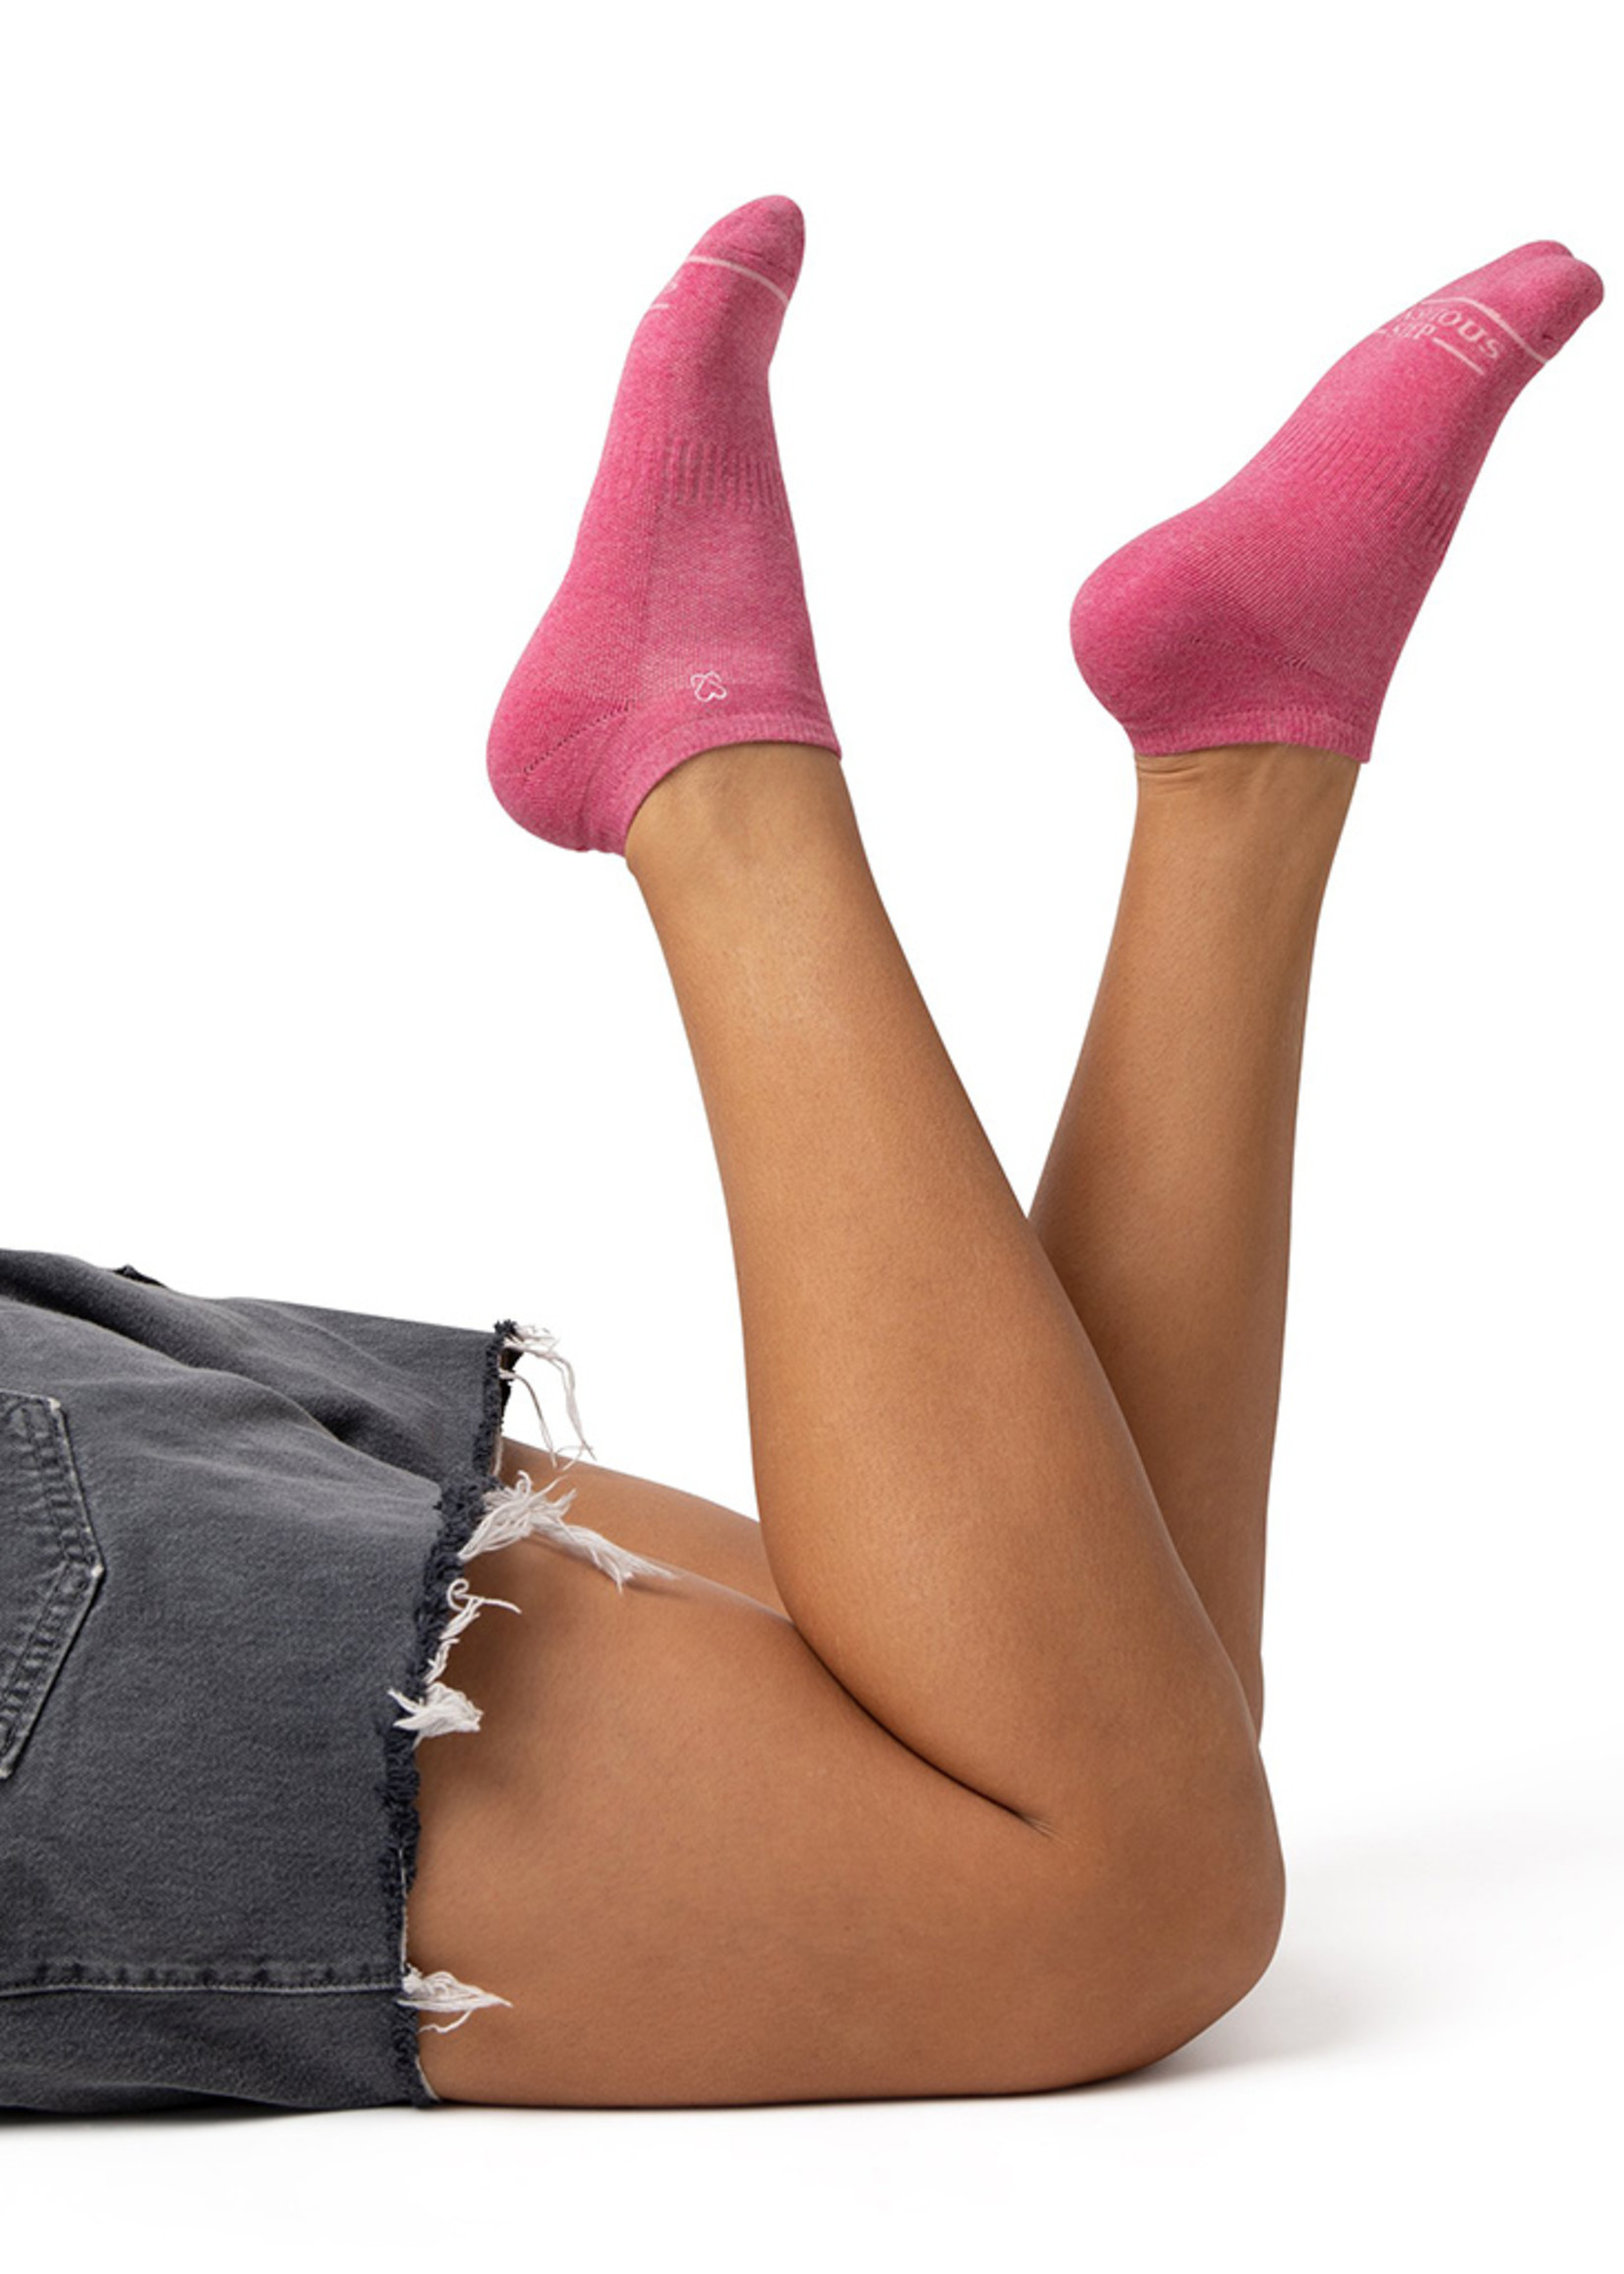 Conscious Step Women's Box of Socks That Prevent Breast Cancer